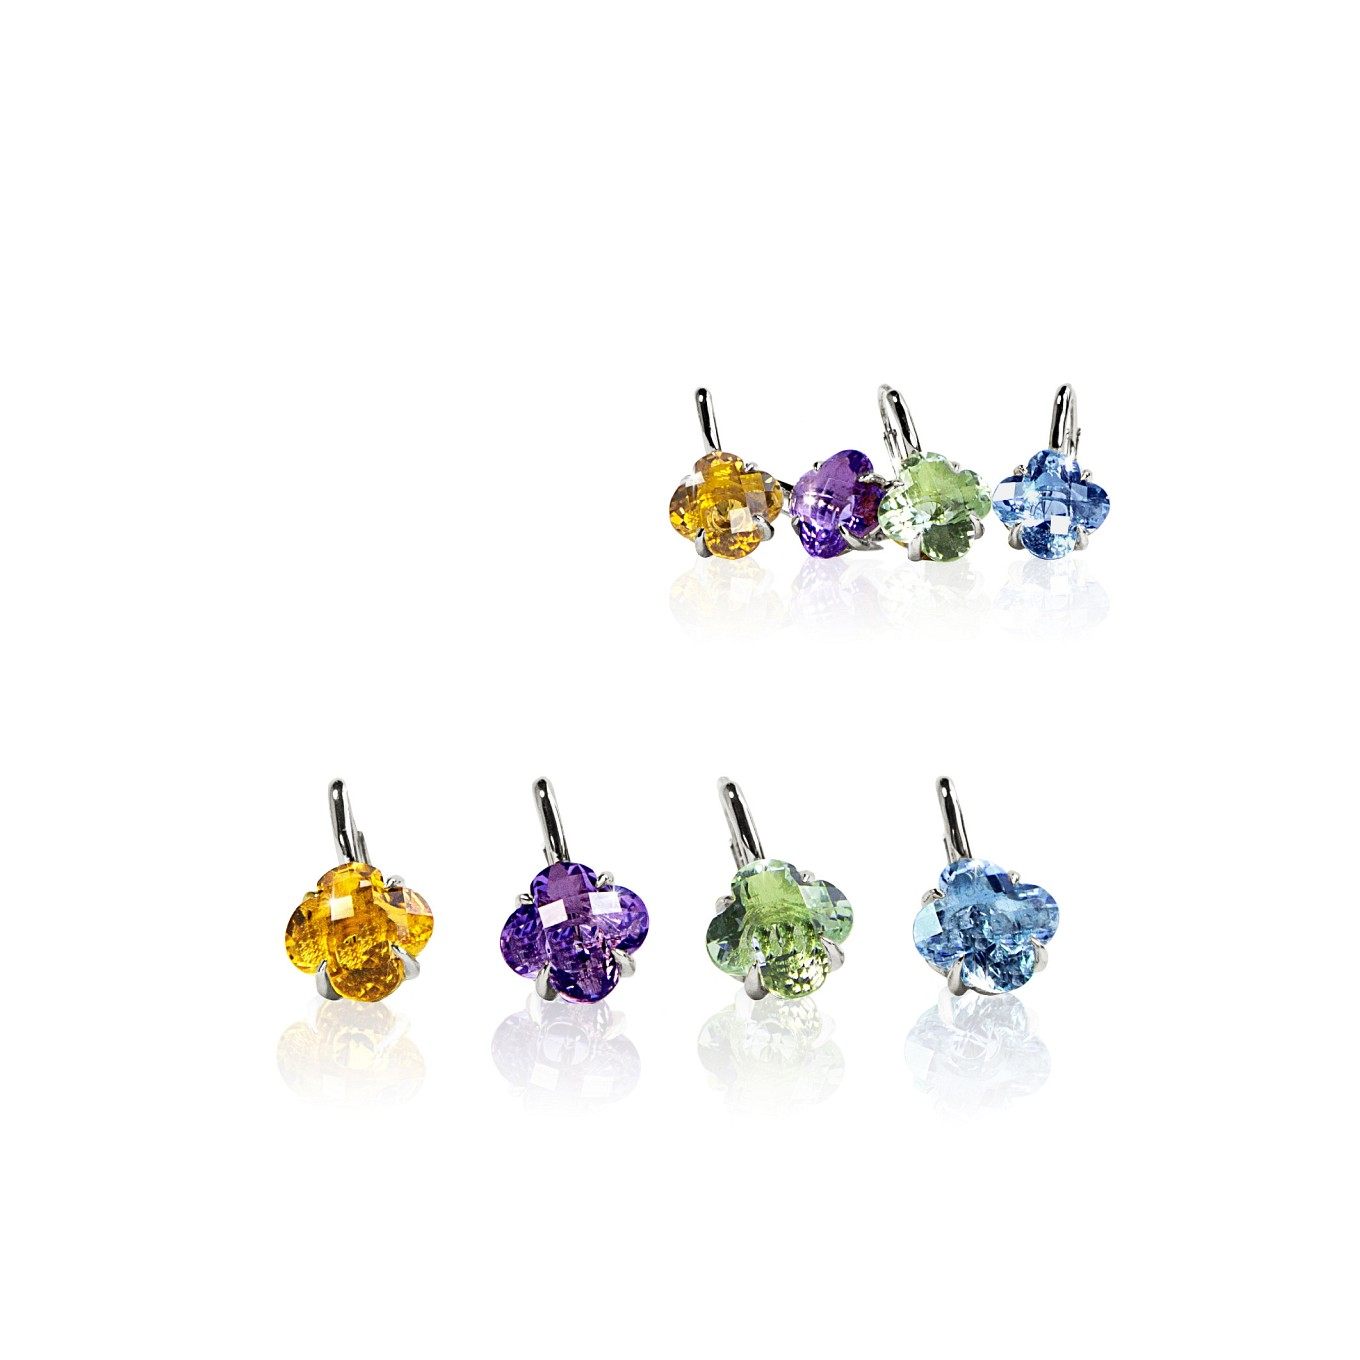 CITRINE, AMETHYST, GREEN, AMETHYST & BLUE TOPAZ CLOVER DROP EARRINGS IN STERLING SILVER